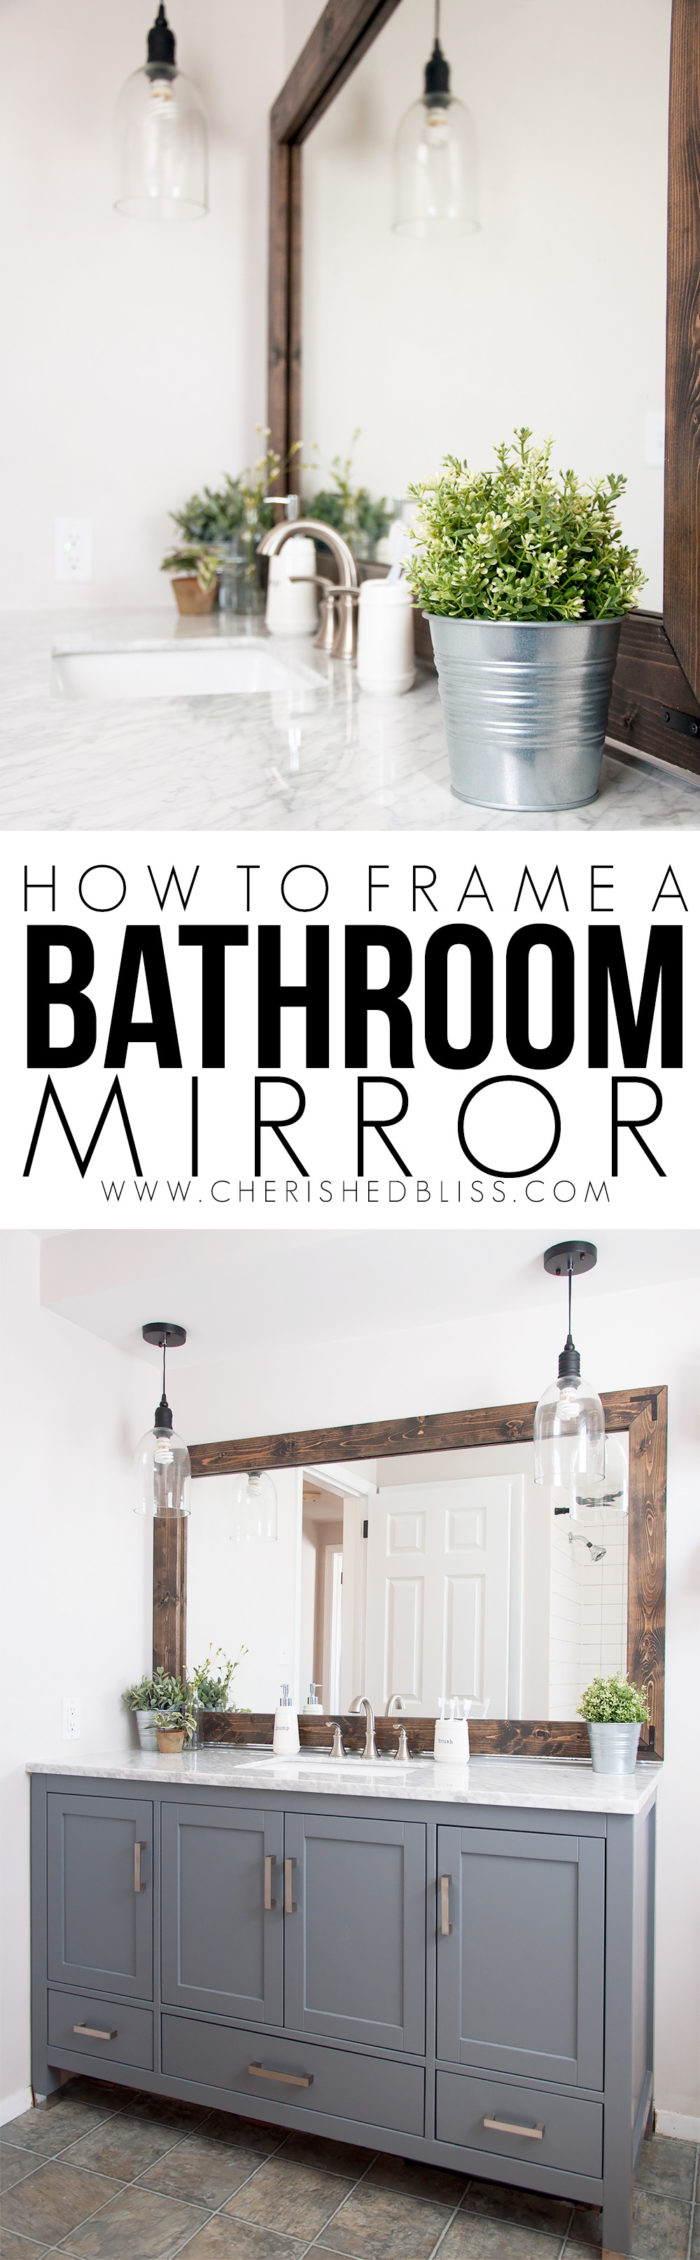 home design gallery stunning framing mirror bathroom trend in frame a moulding with how to